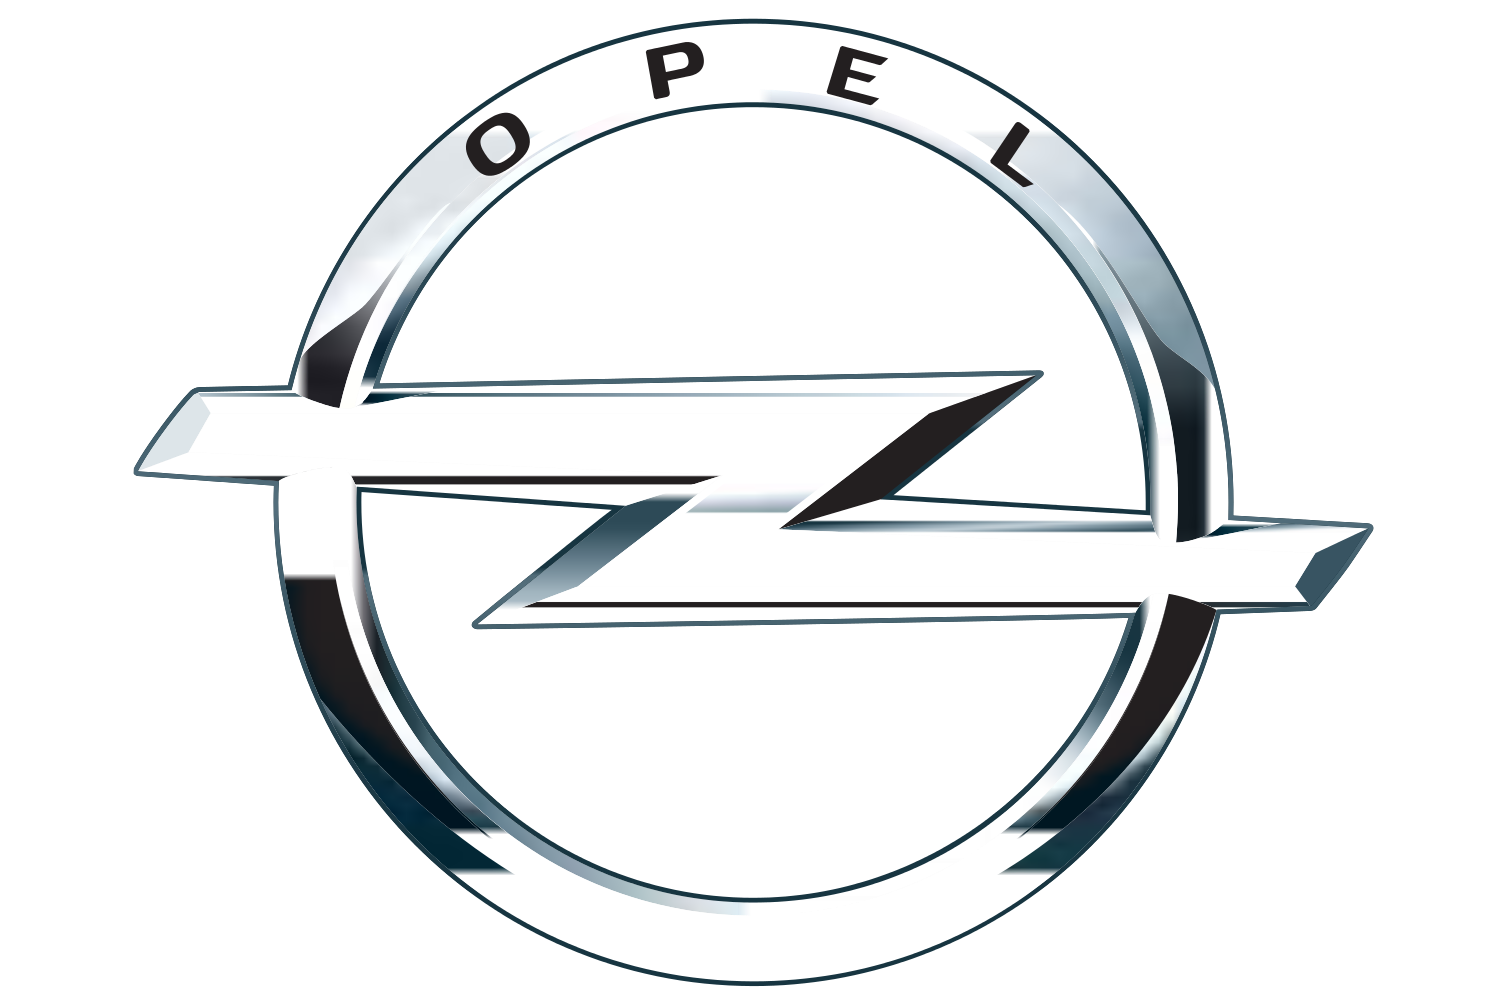 Opel logo opel car symbol and history car brand names opel logo biocorpaavc Image collections